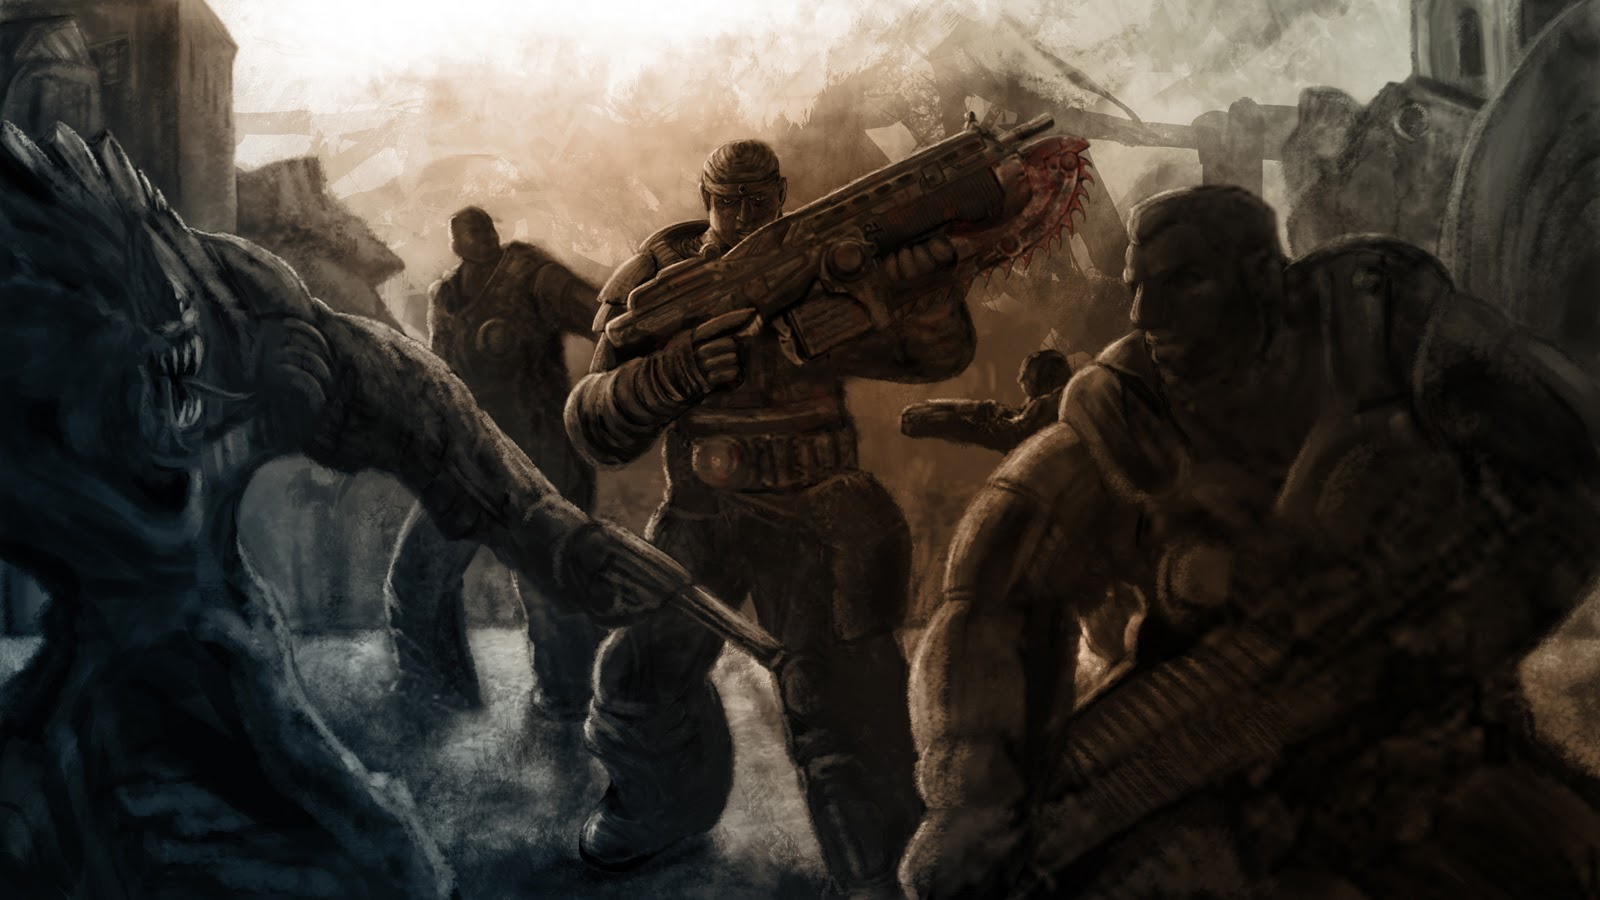 Gears of War HD & Widescreen Wallpaper 0.759731749053921